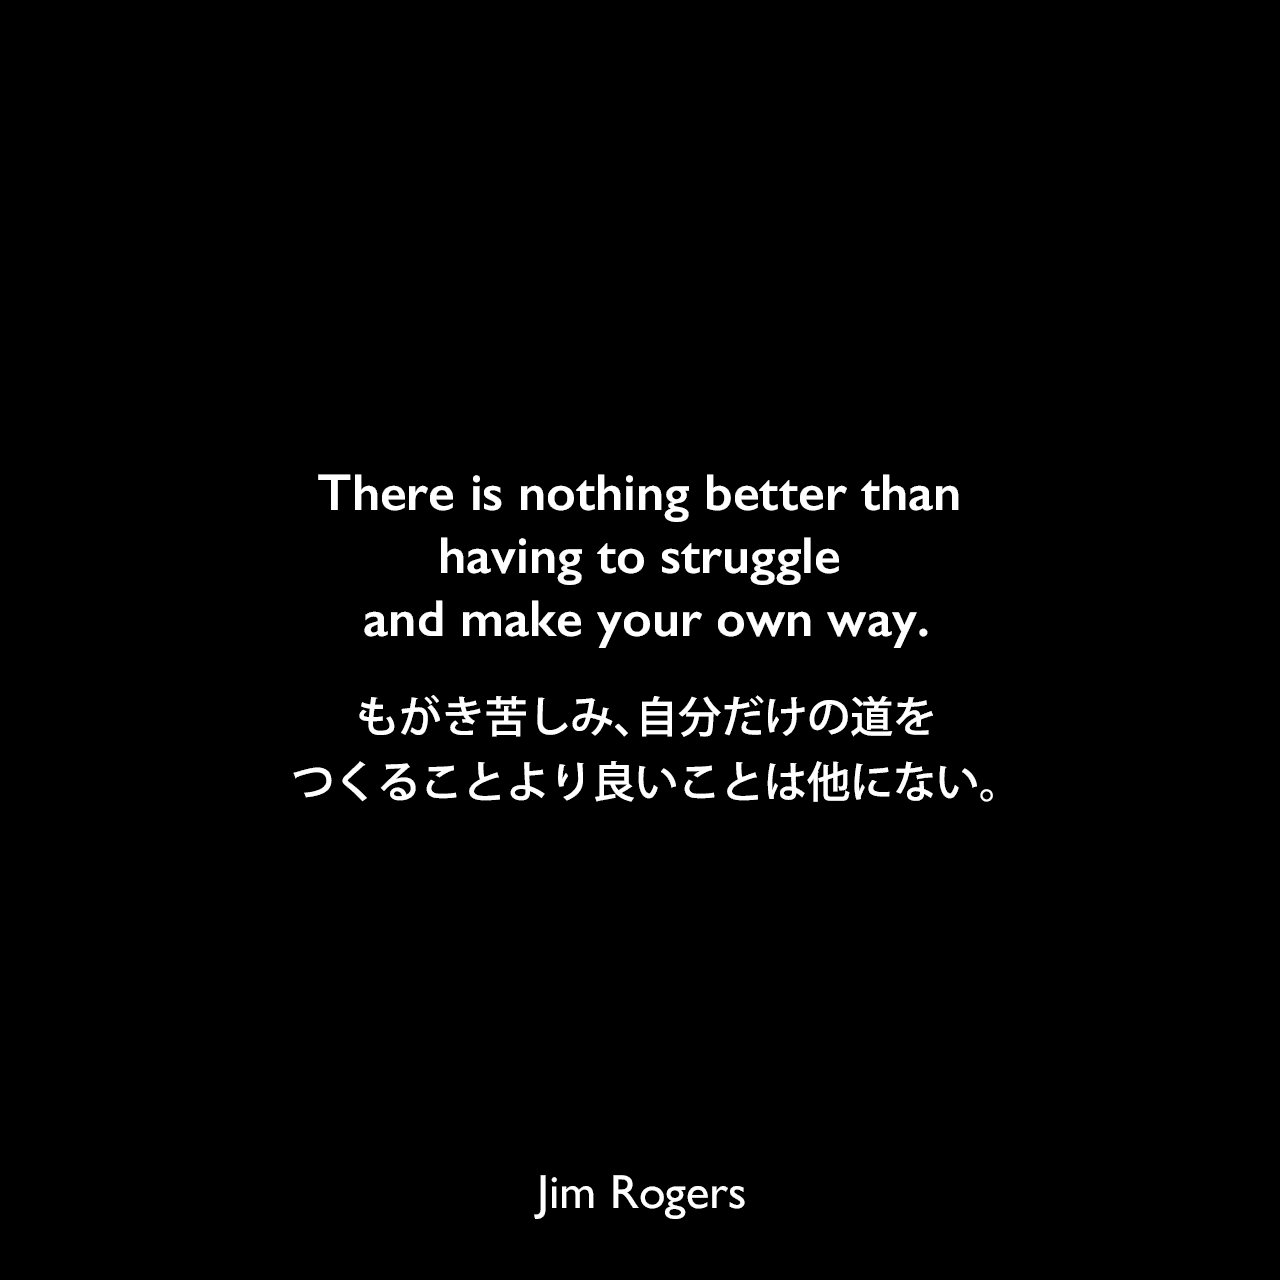 There is nothing better than having to struggle and make your own way.もがき苦しみ、自分だけの道をつくることより良いことは他にない。《参照:Street Smarts: Adventures on the Road and in the Markets(2013)》Jim Rogers